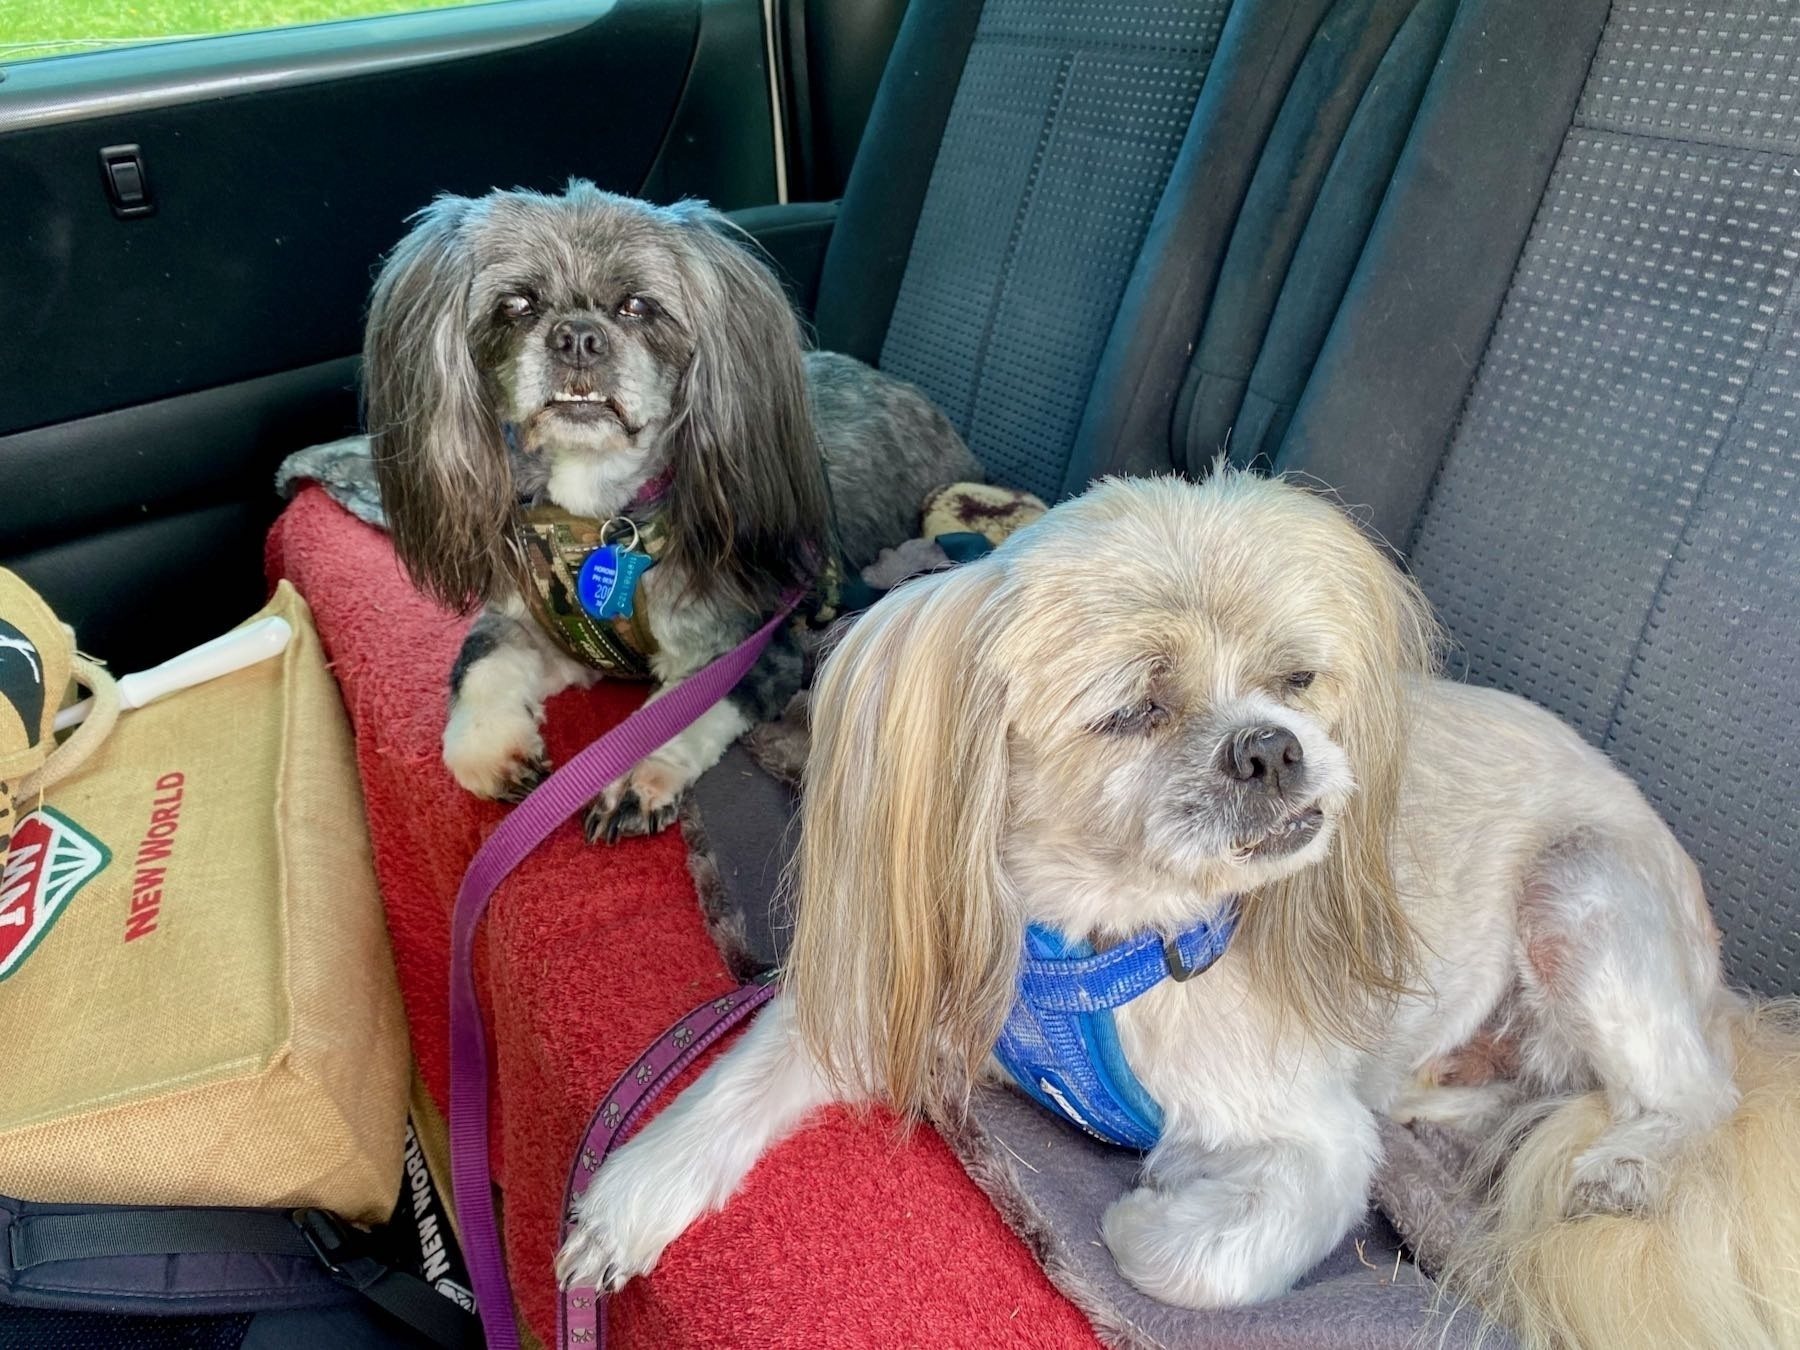 Two small freshly groomed dogs on the back seat of a car.